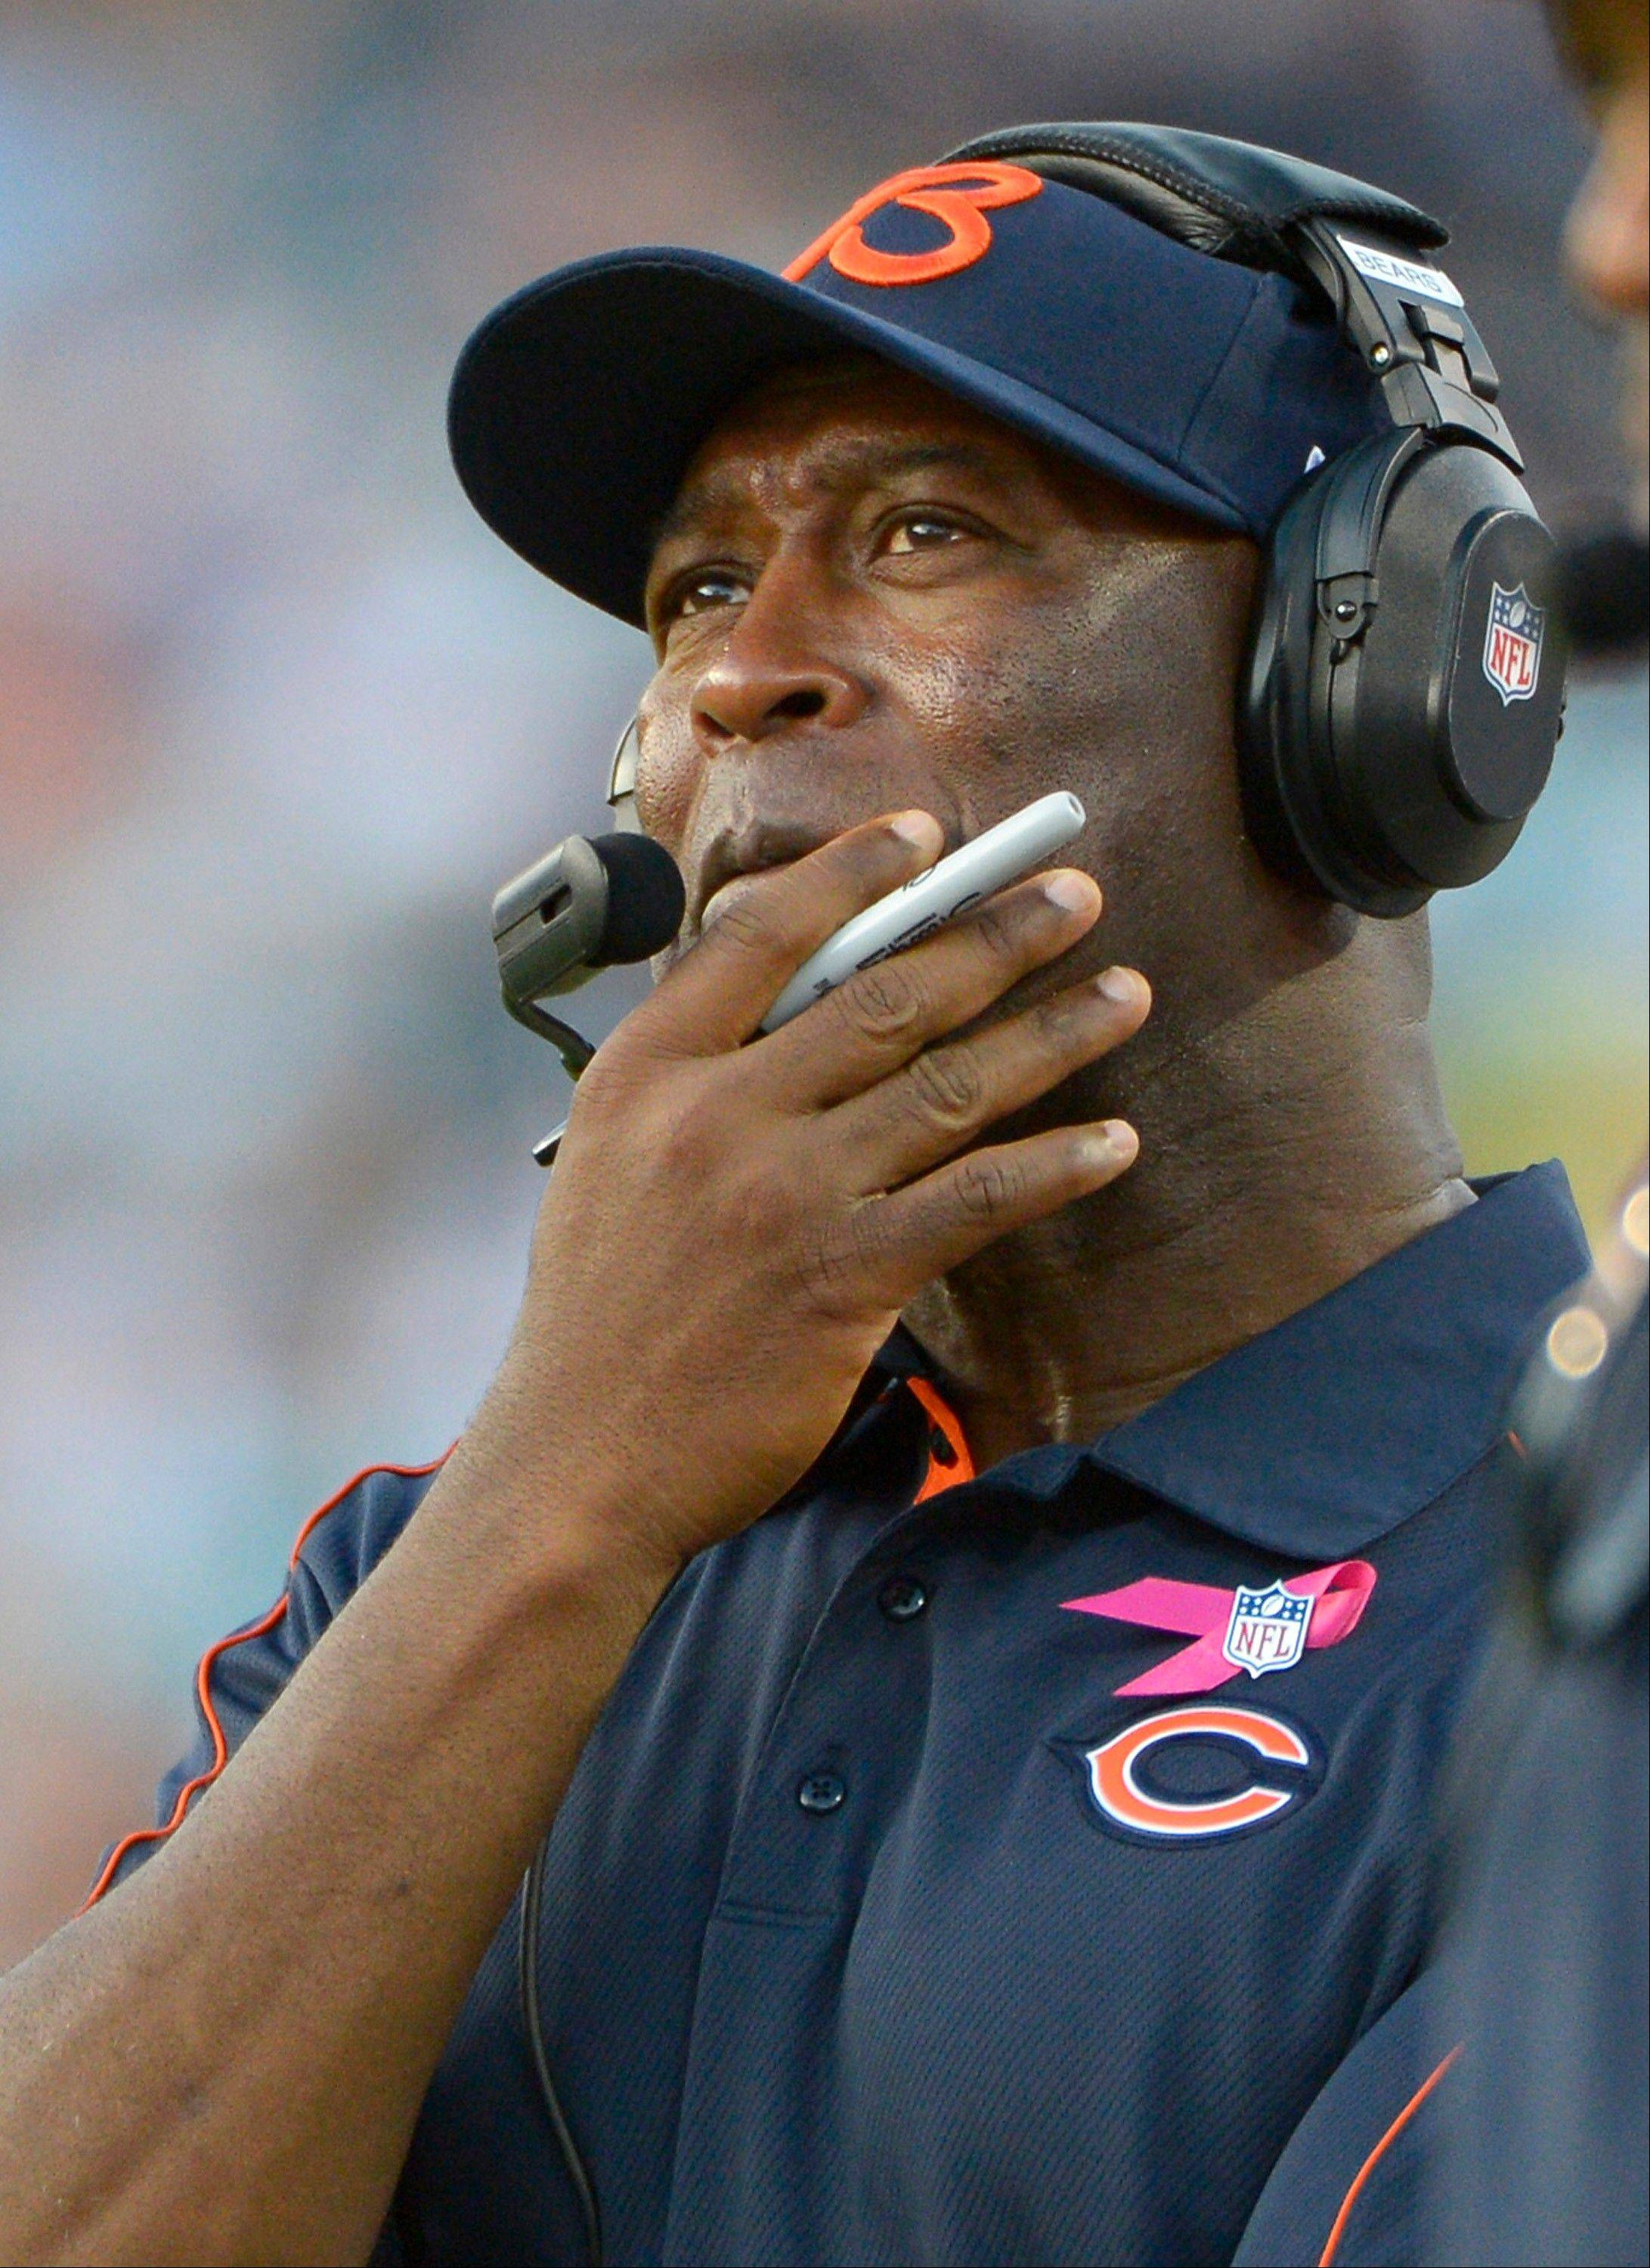 Bears head coach Lovie Smith watches play during the second half of an NFL football game against the Jacksonville Jaguars, Sunday, Oct. 7, 2012, in Jacksonville, Fla. Chicago won 41-3.